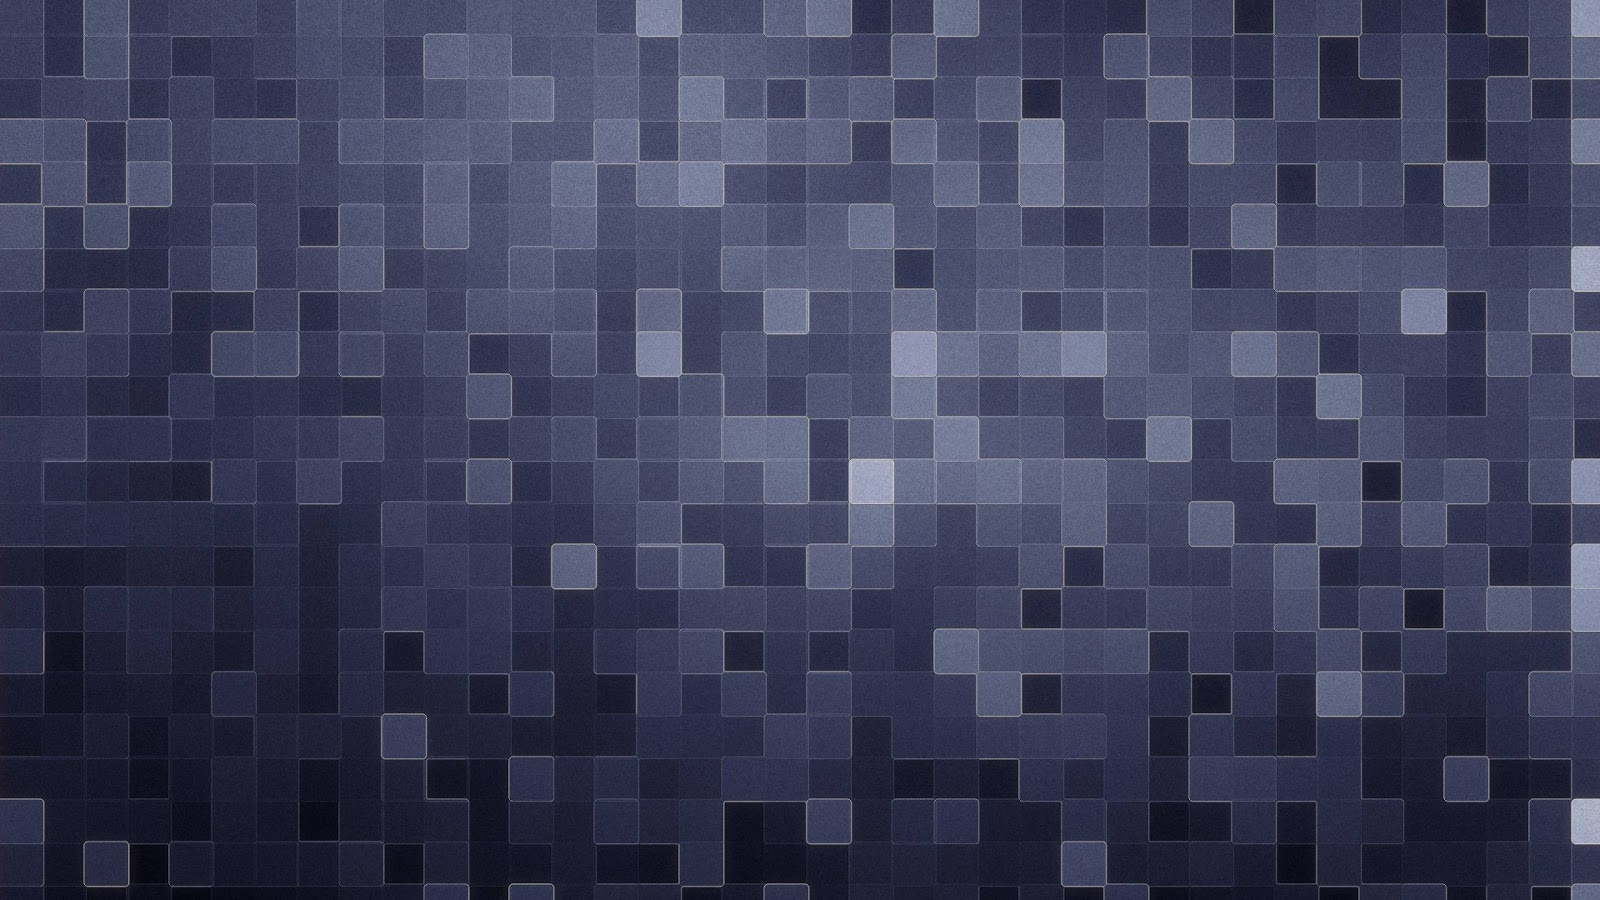 Abstract Backgrounds#4